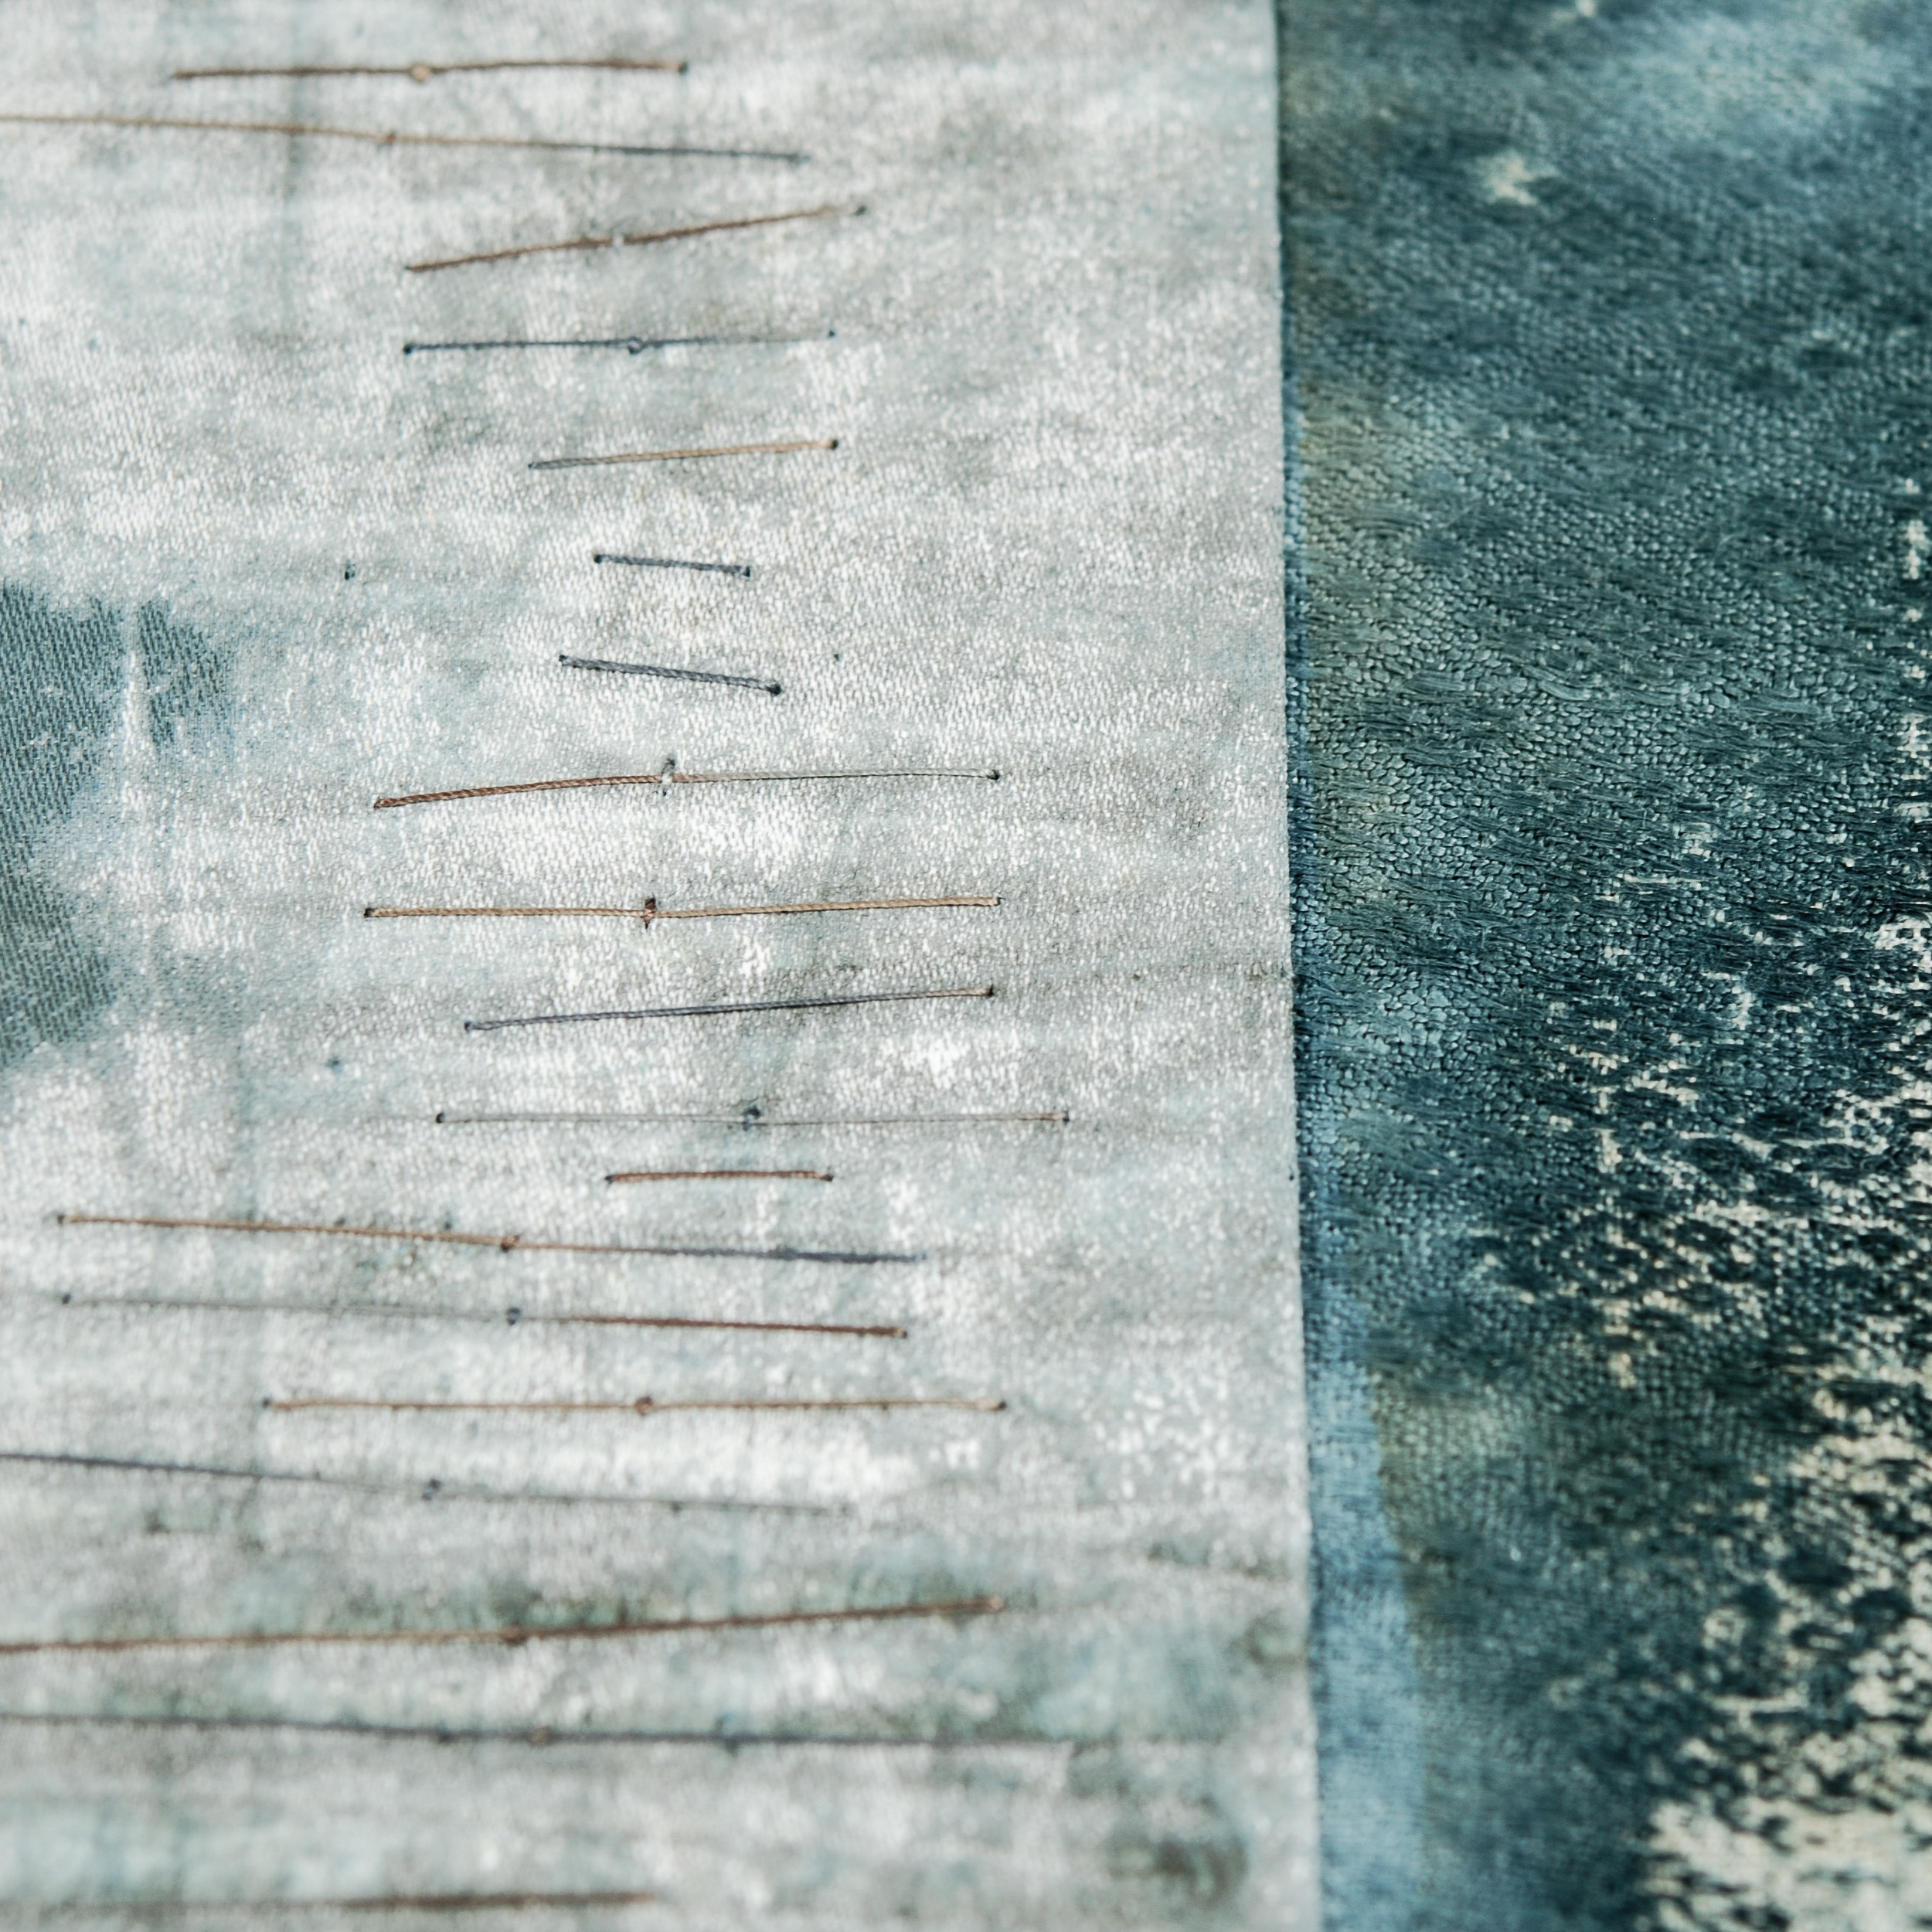 Transience 16 (detail)